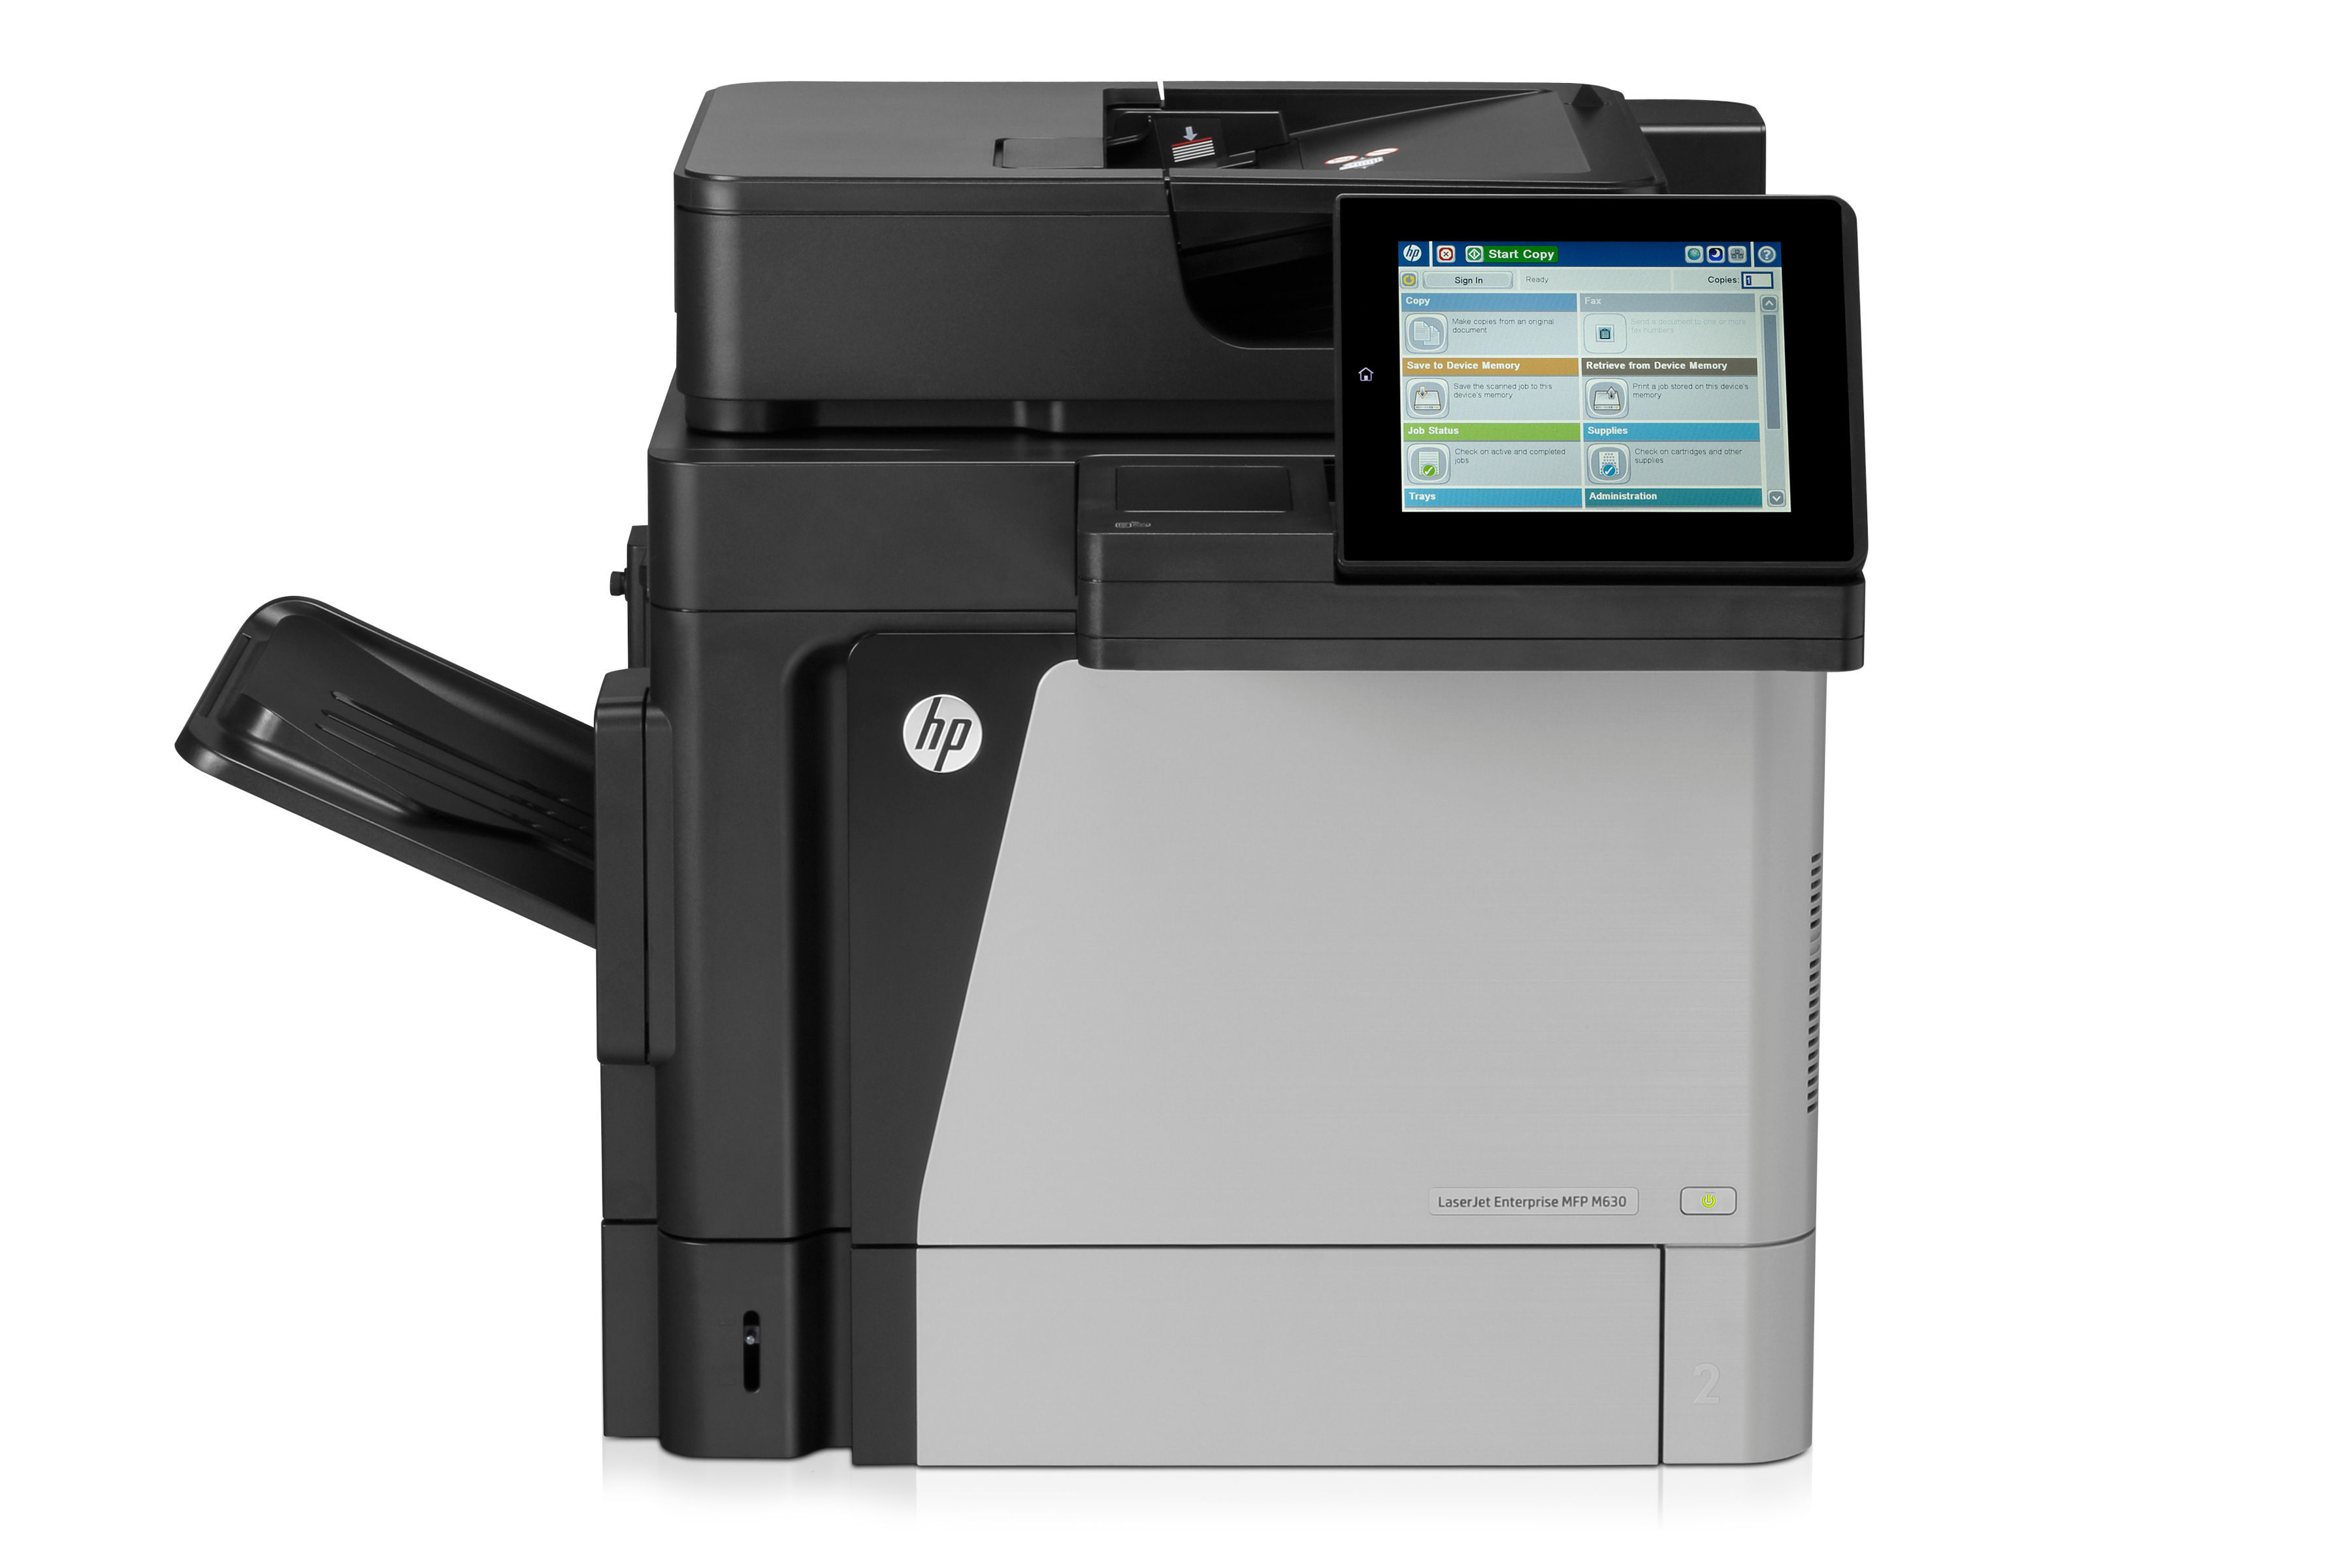 HP/ M630h/ A4/ Mono/ 60ppm/ Network/ Duplex/ 320GB HDD J7X28A Exdemo (A1 Condition) - Graded